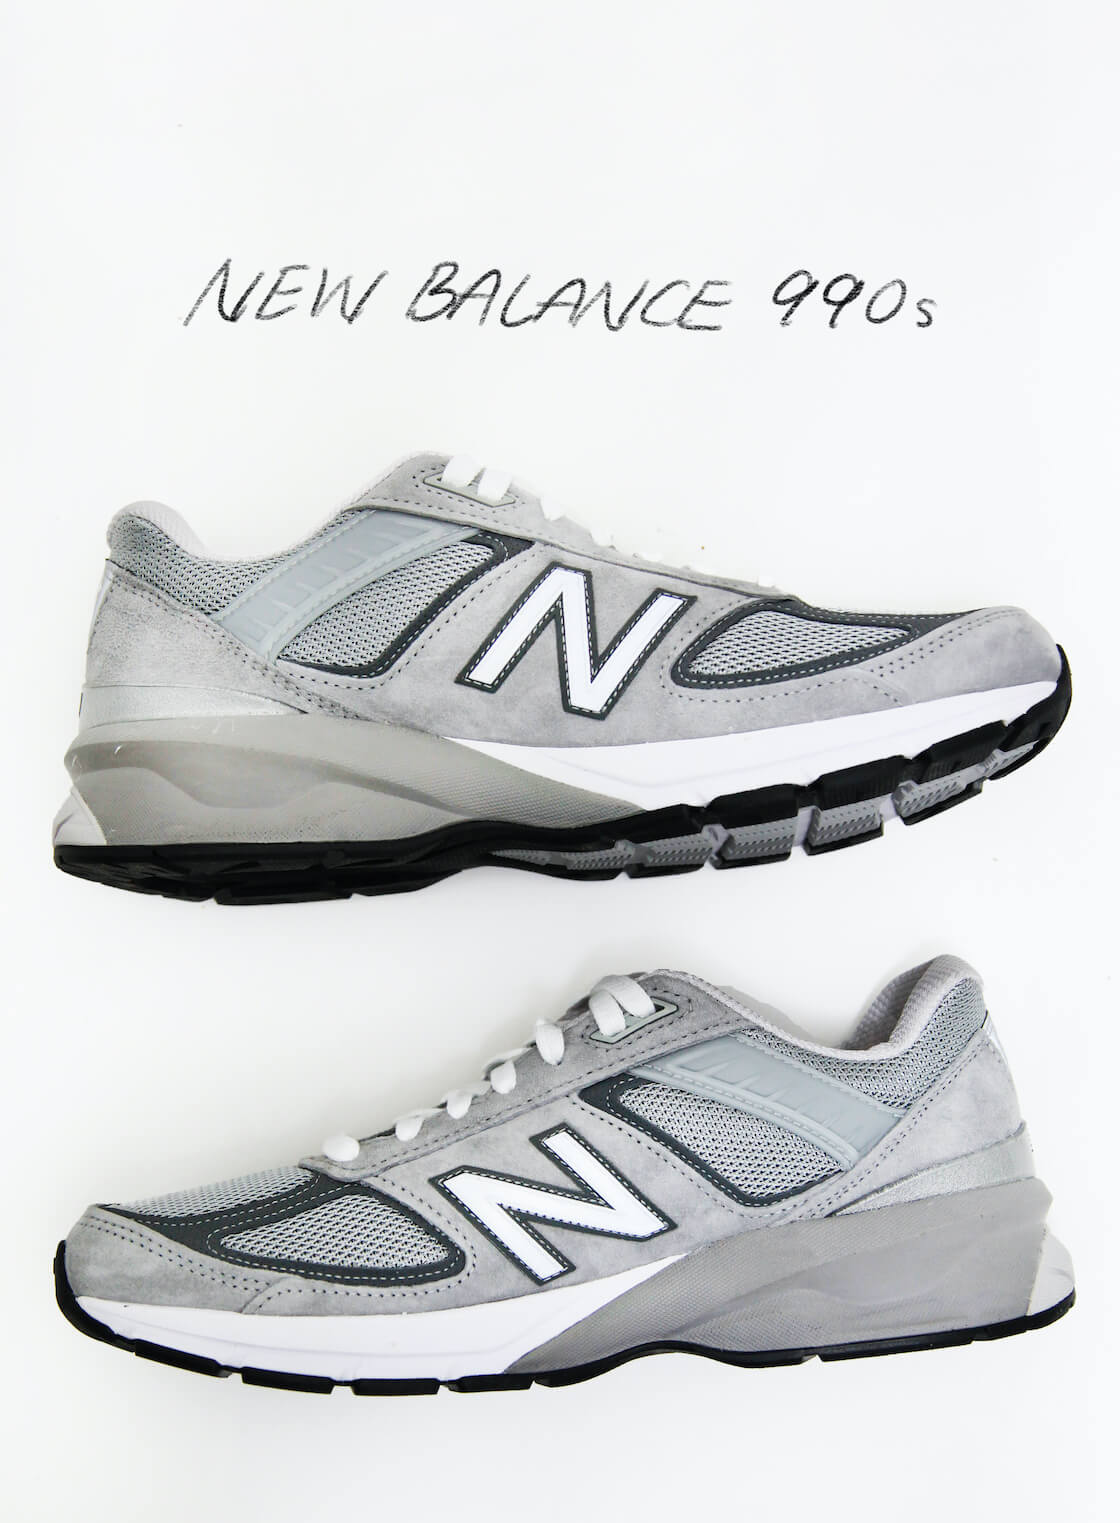 favorite sneakers are the new balance 990 series of shoes